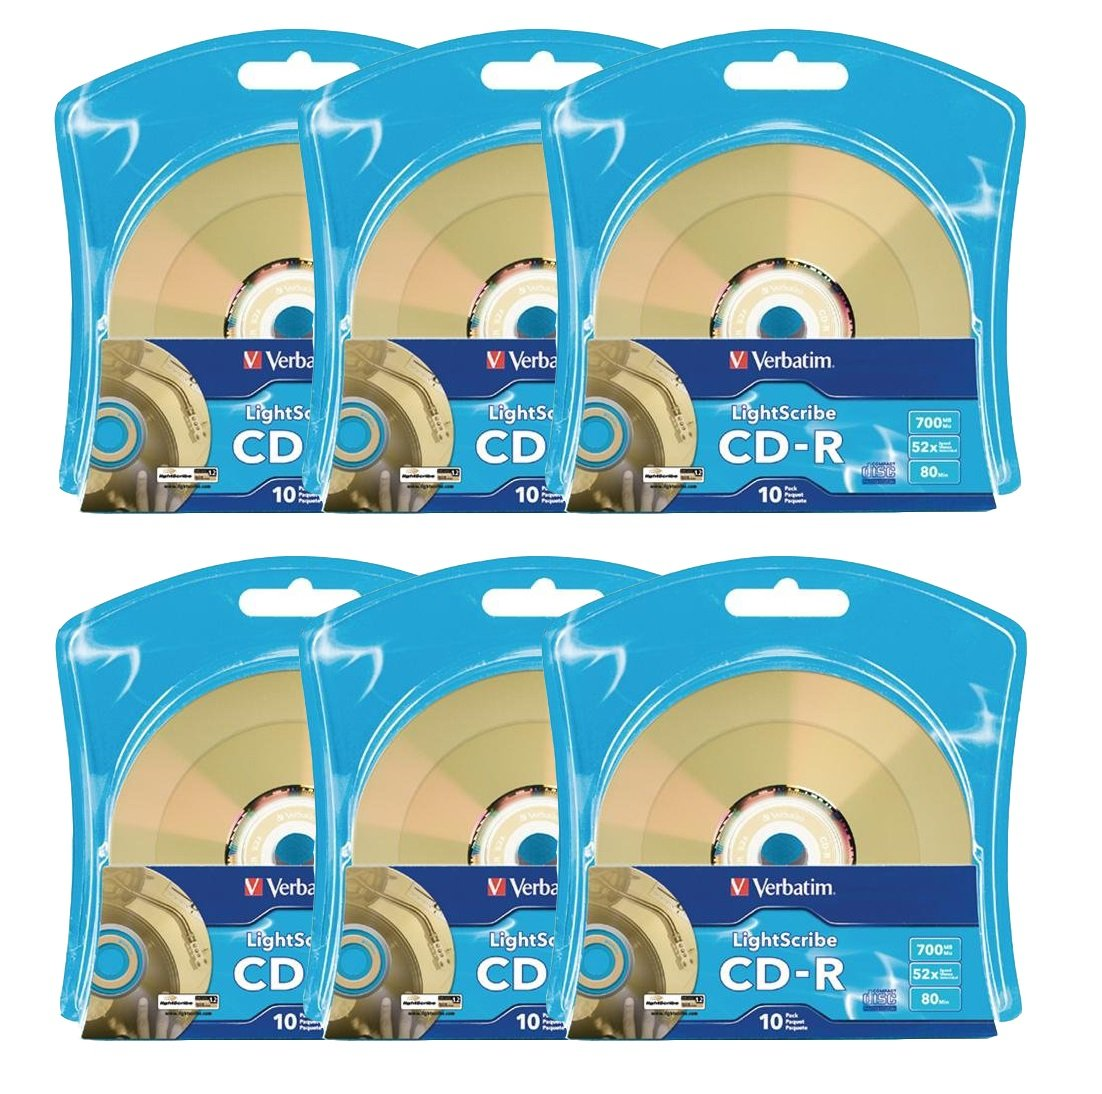 Verbatim 52X CD-R LightScribe Blank Media, 700MB/80min - 60 Pack (6 x 10 Packs)